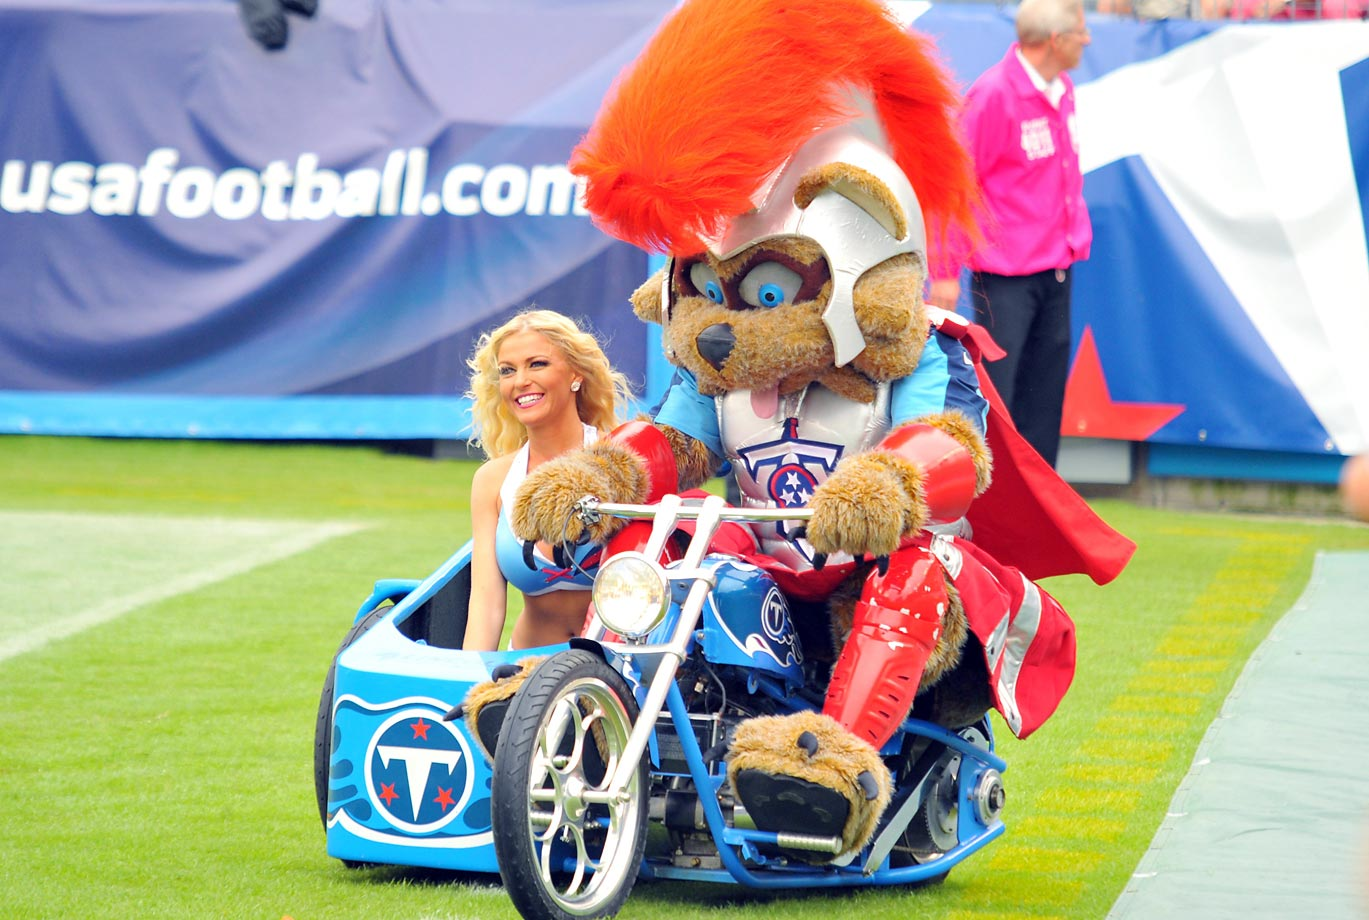 Titans mascot T-Rac gives a motorcycle ride to a Titans cheerleader at LP Field in Nashville.